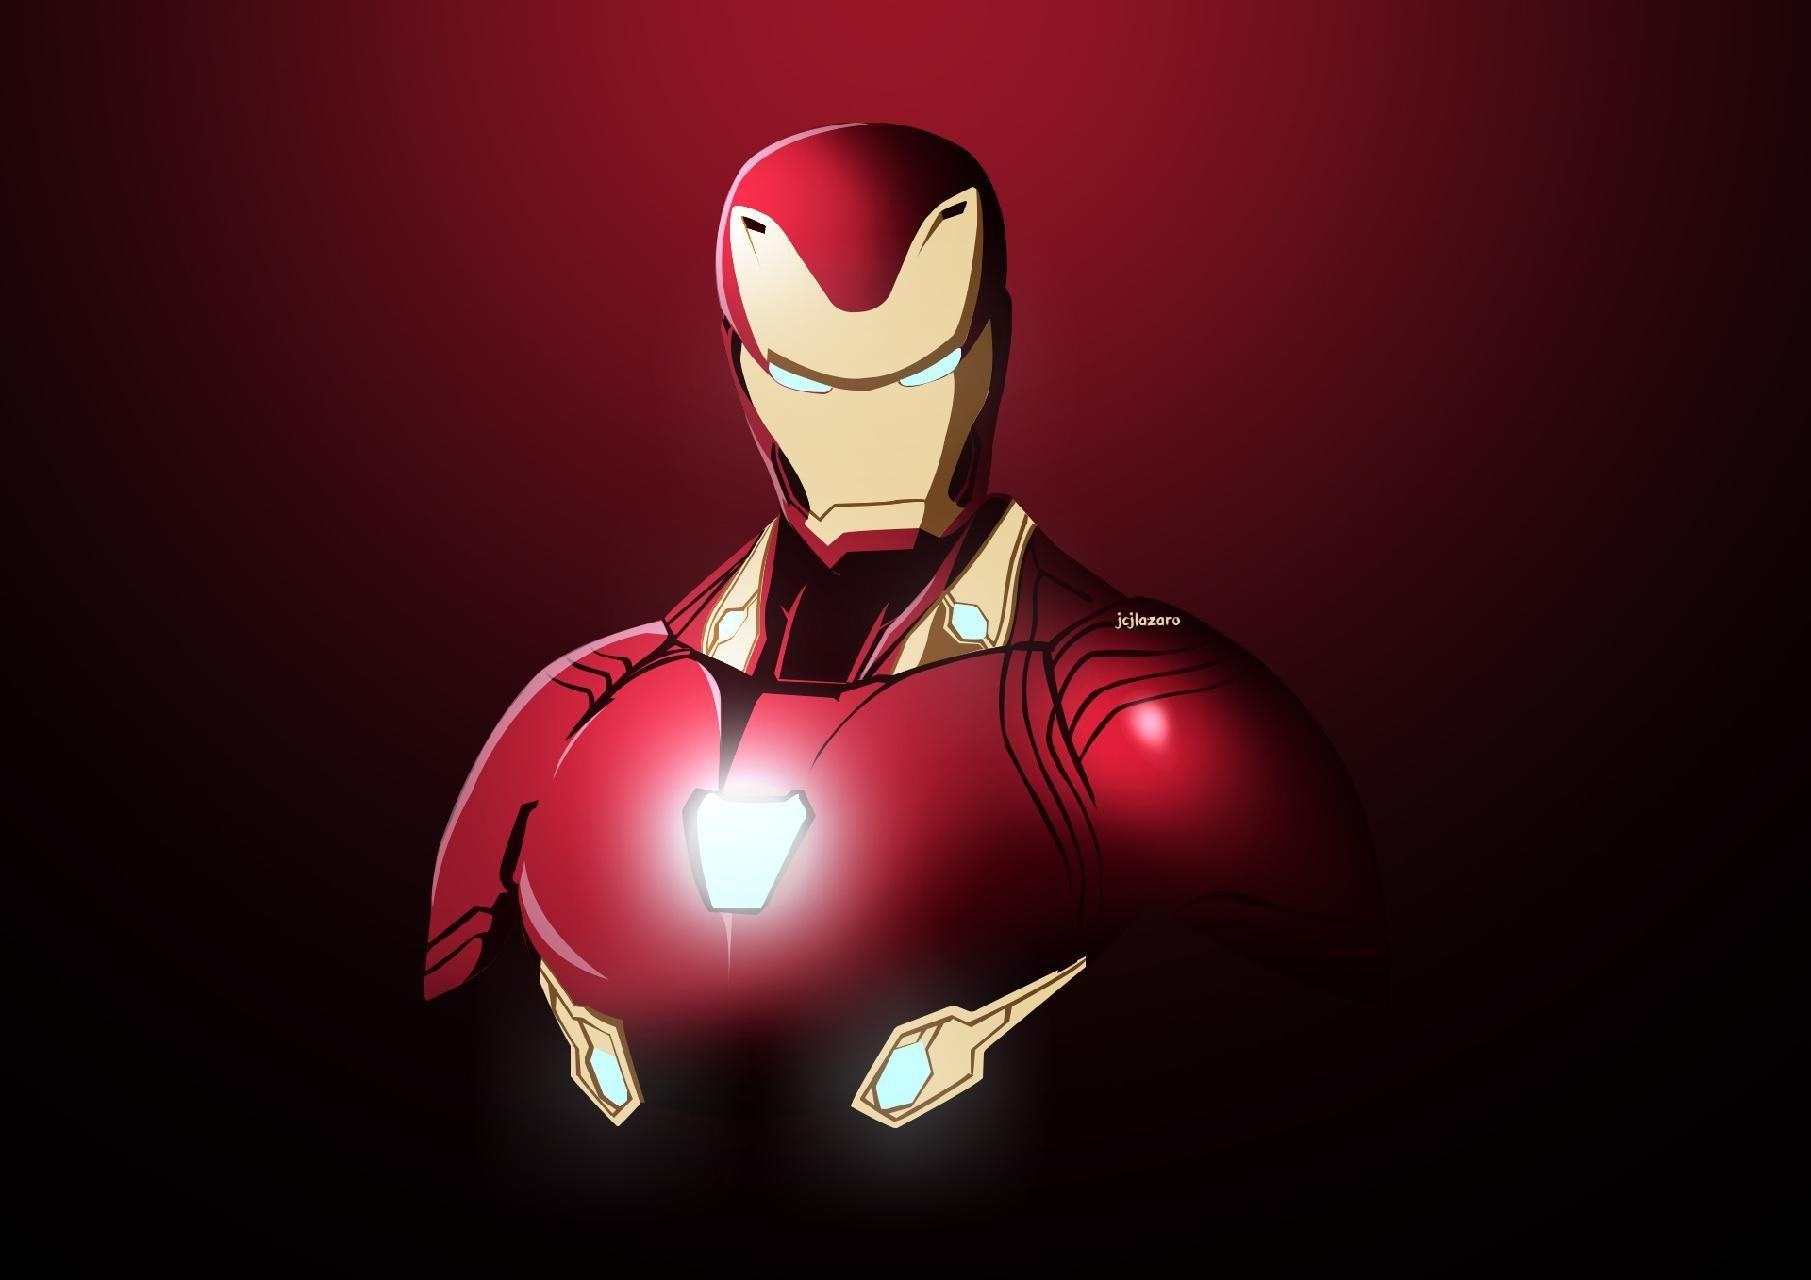 Iron man animated wallpaper labzada wallpaper - Iron man wallpaper anime ...